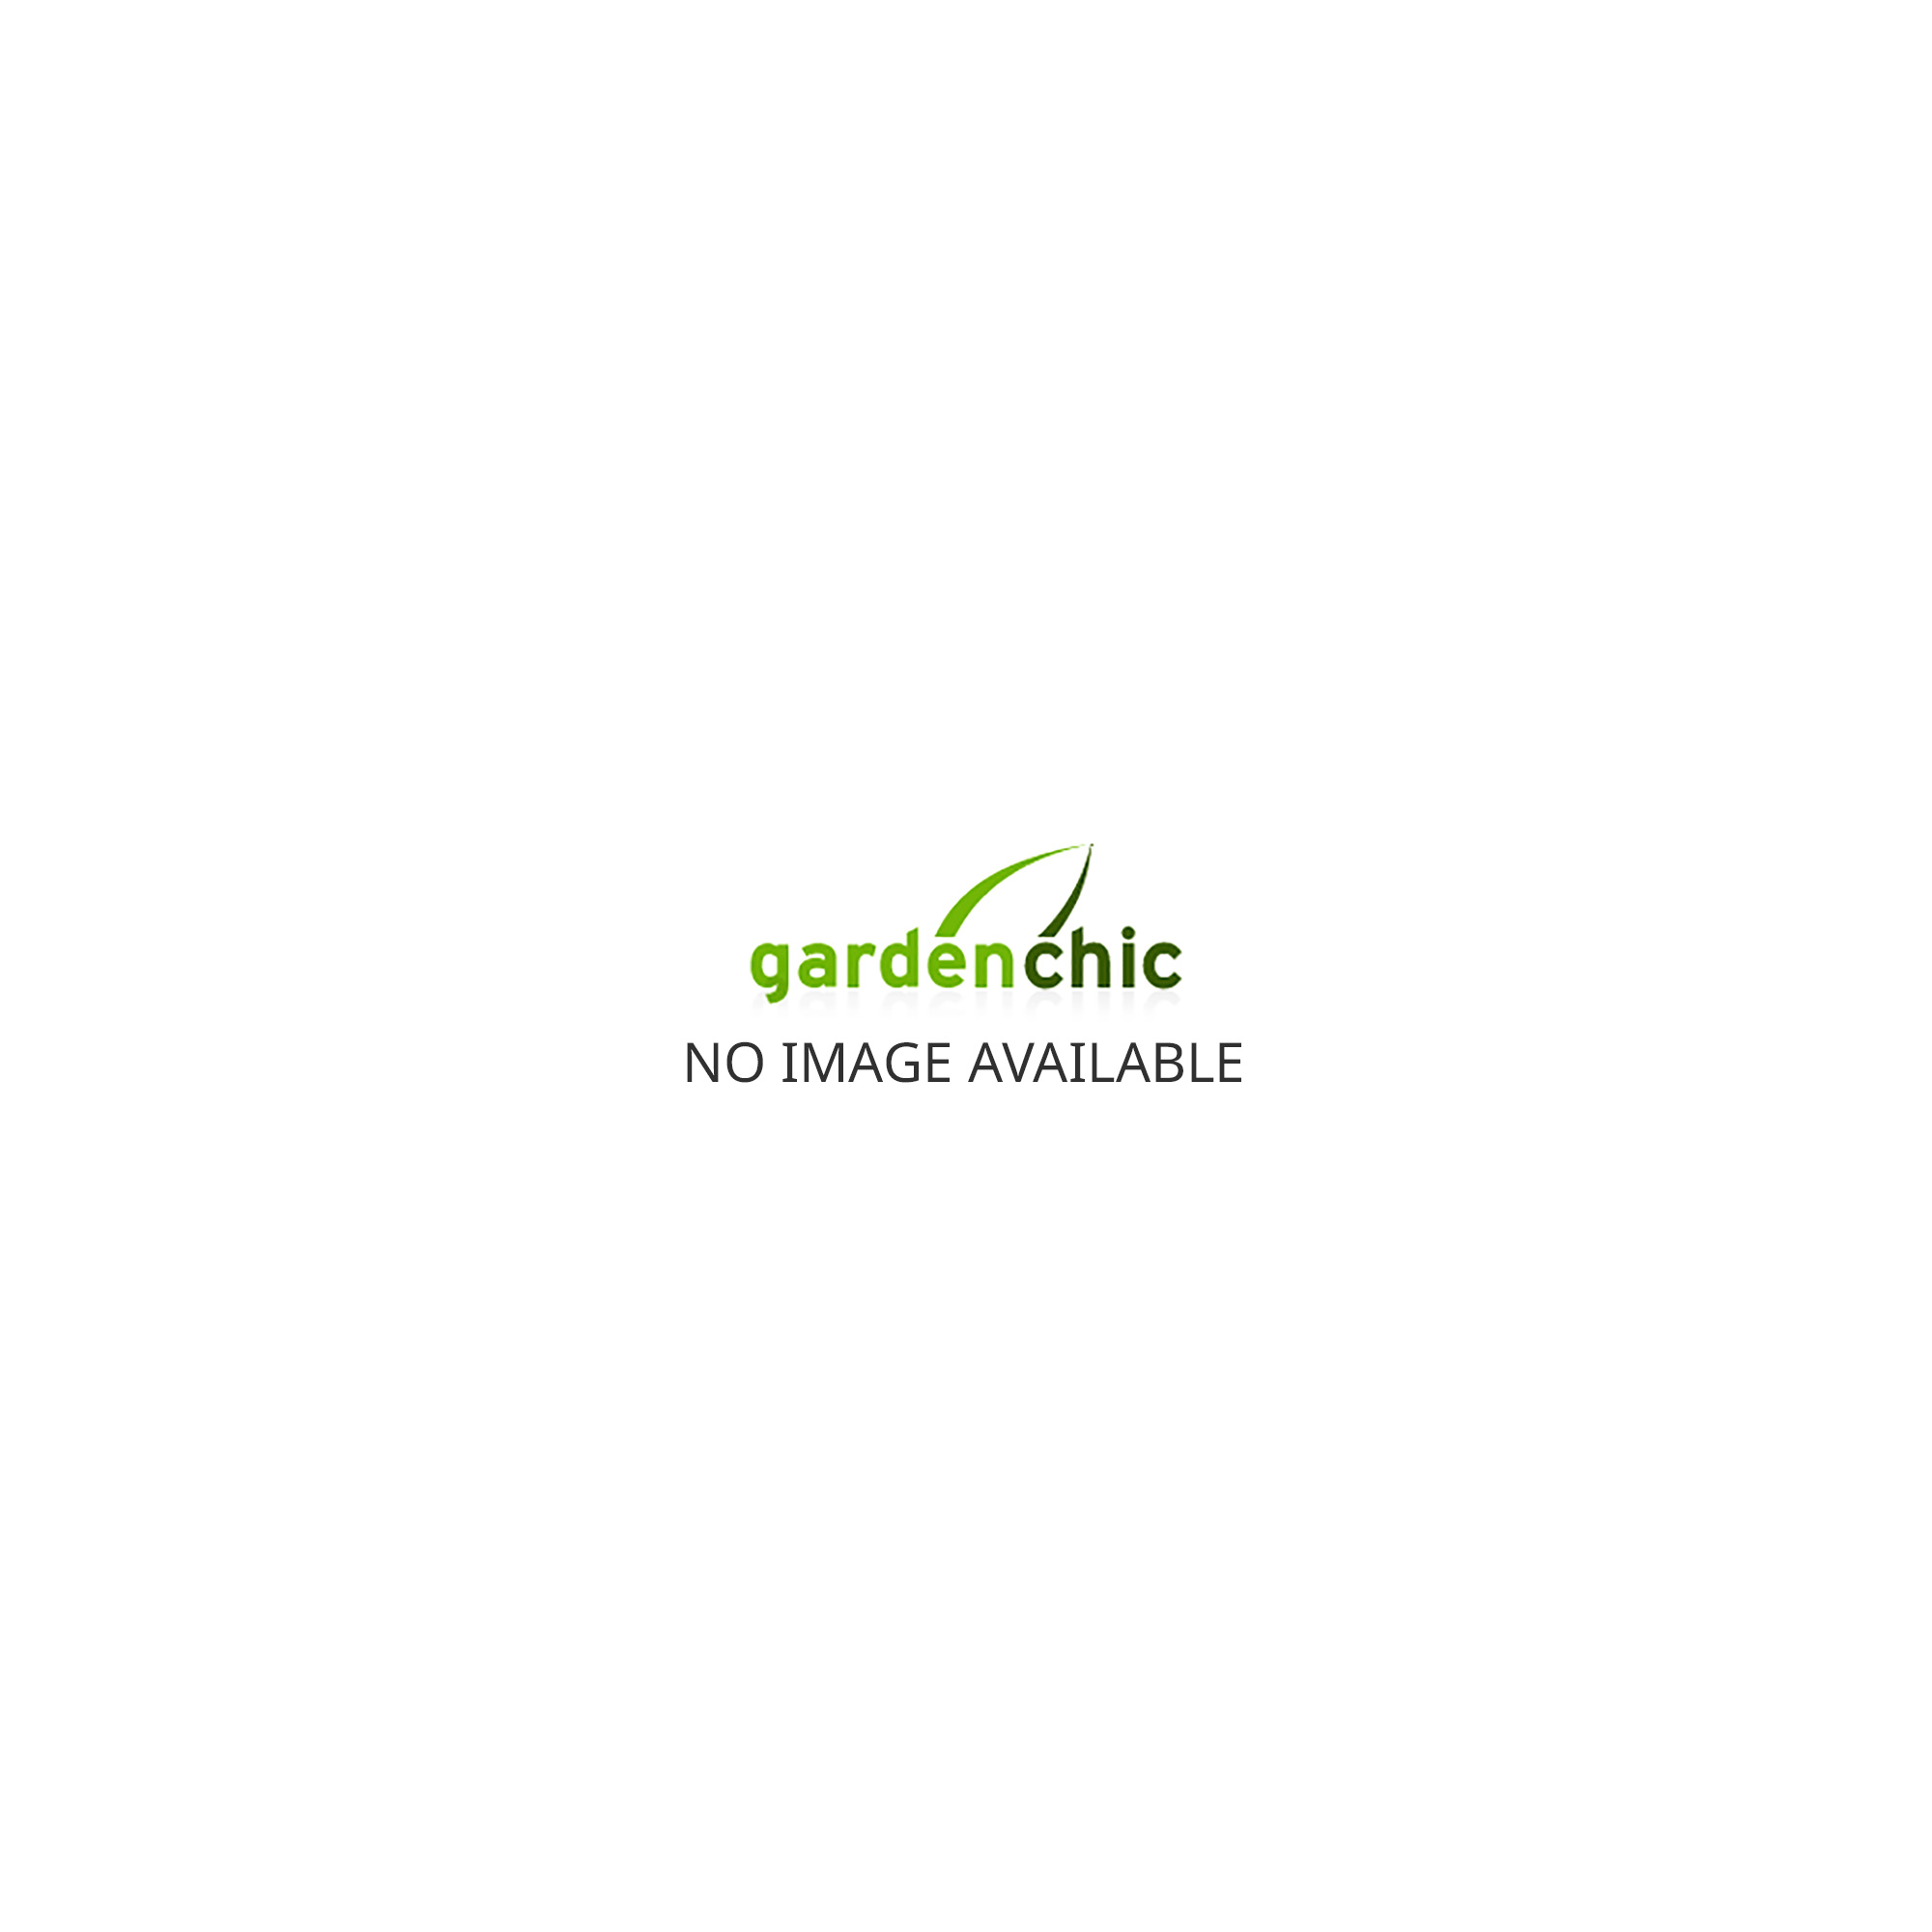 Venus 6200 6ft x 10ft Greenhouse - Silver FREE Matching Base until APRIL 2018